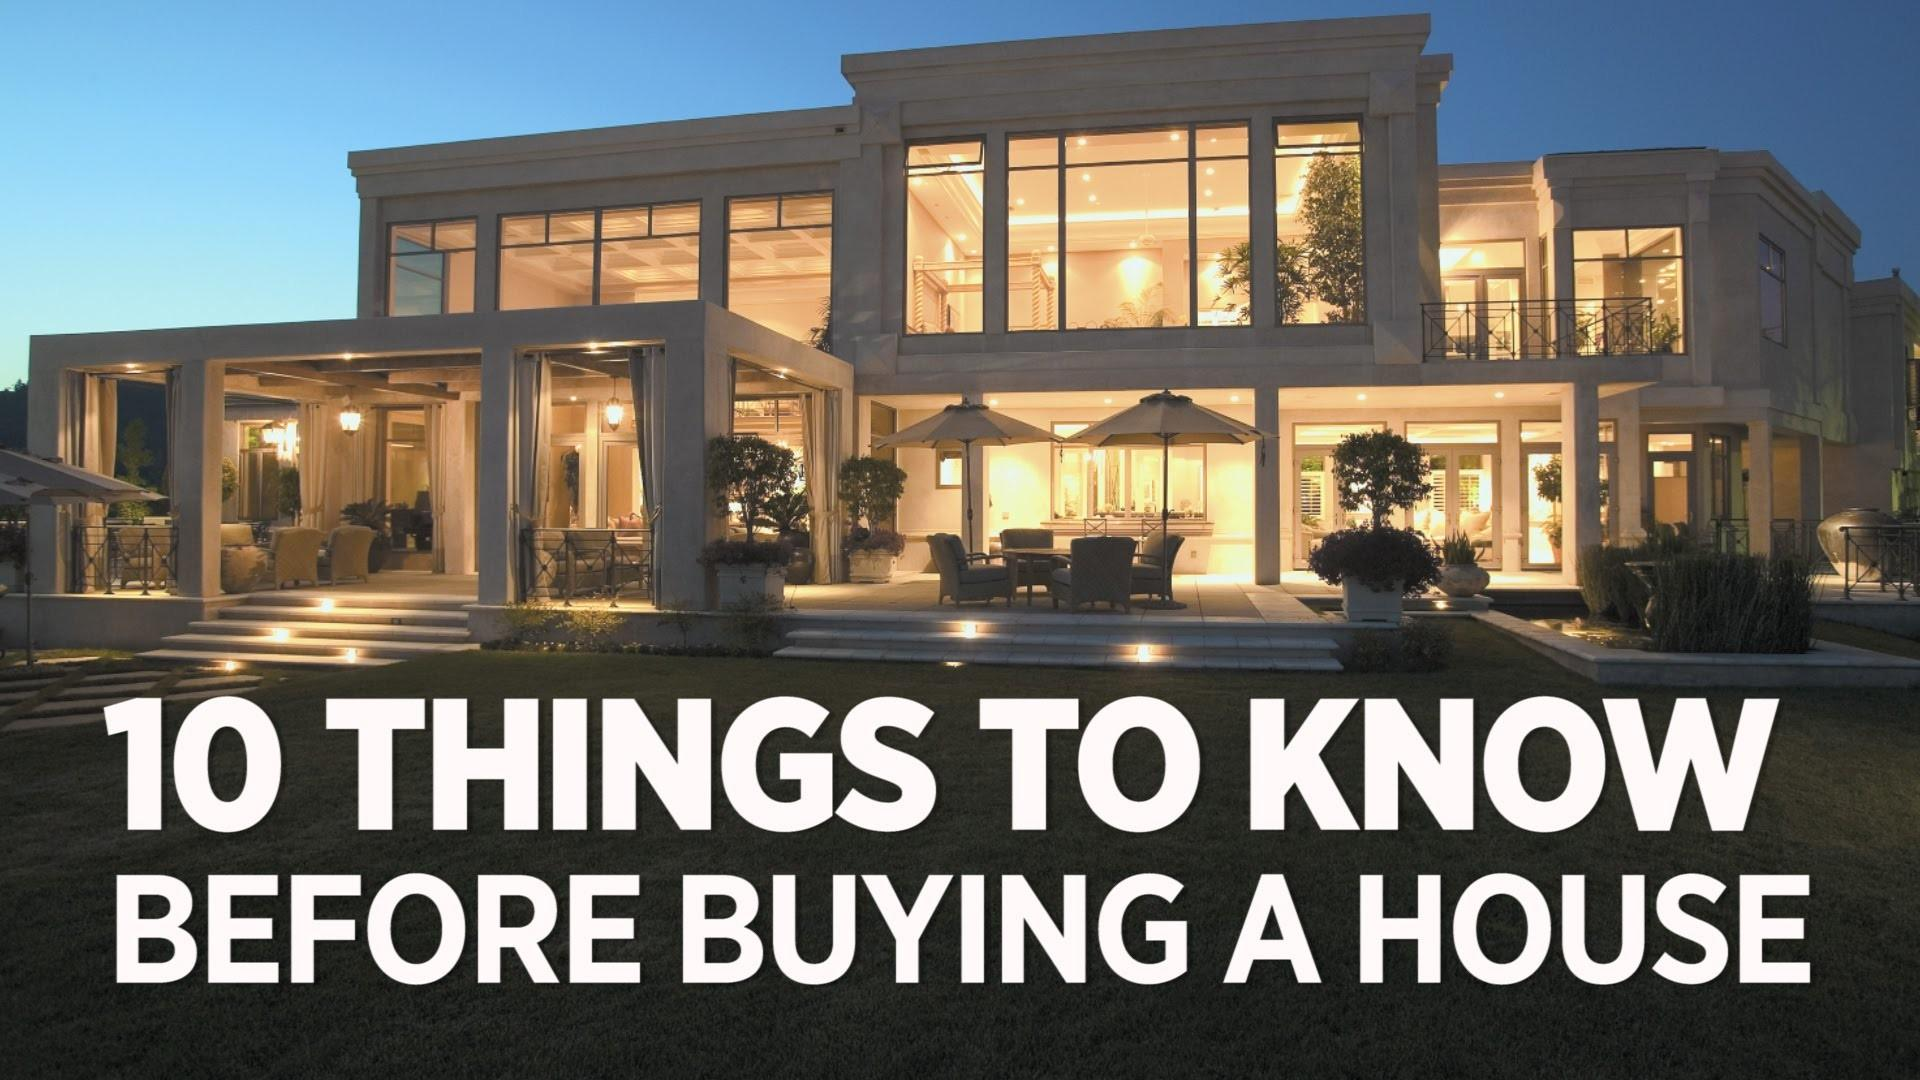 Buying House Things Need Know